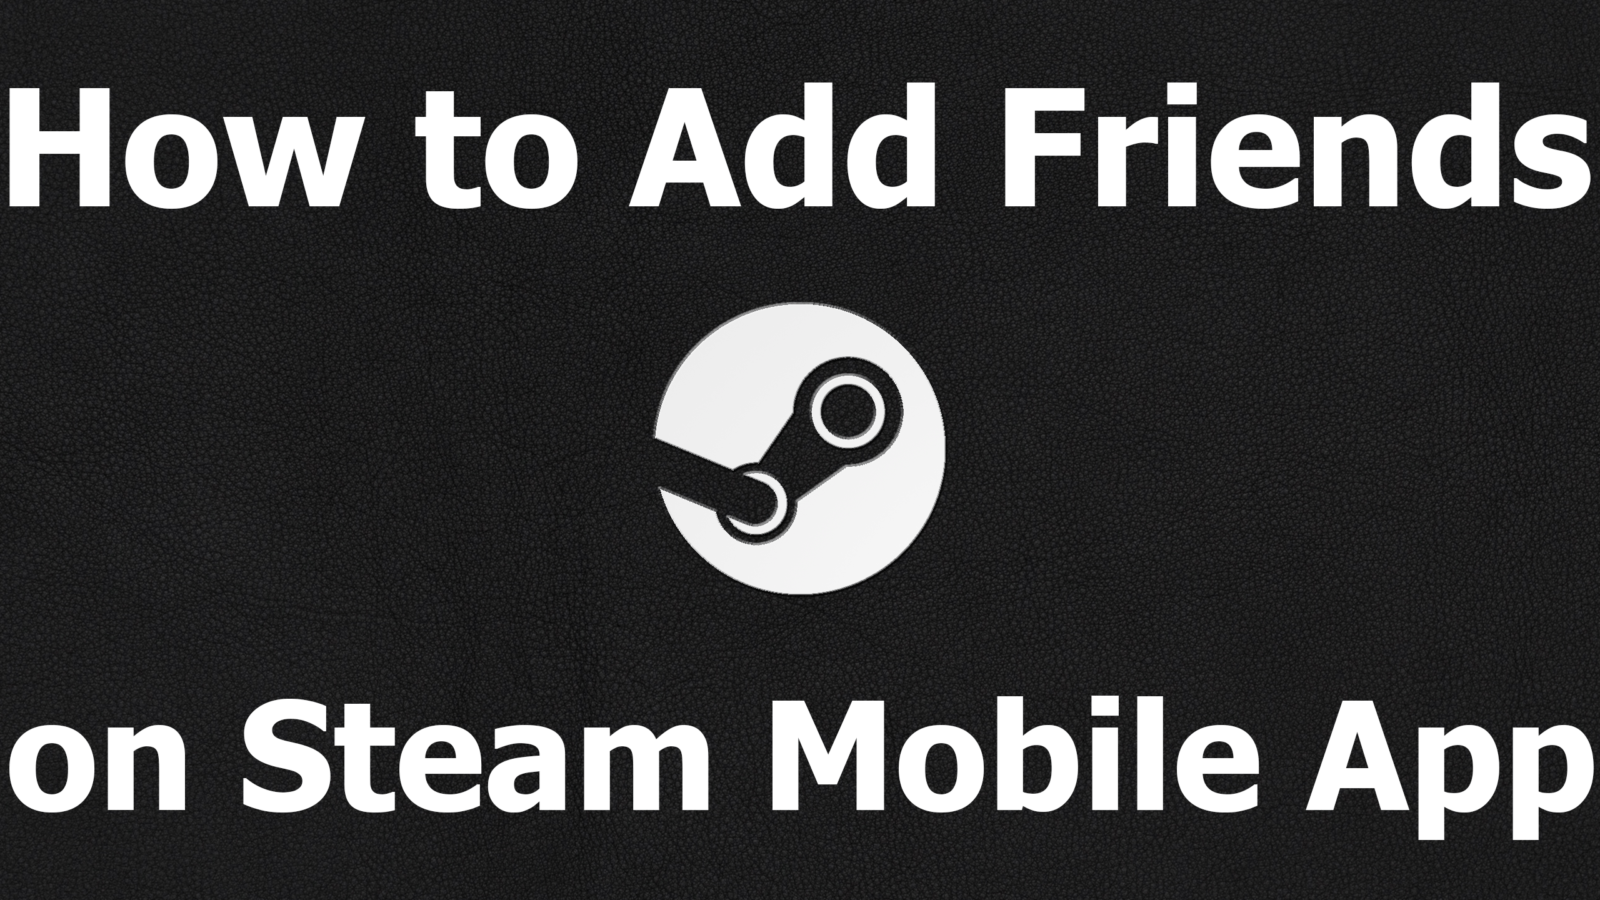 How to Add Friends on Steam Mobile App